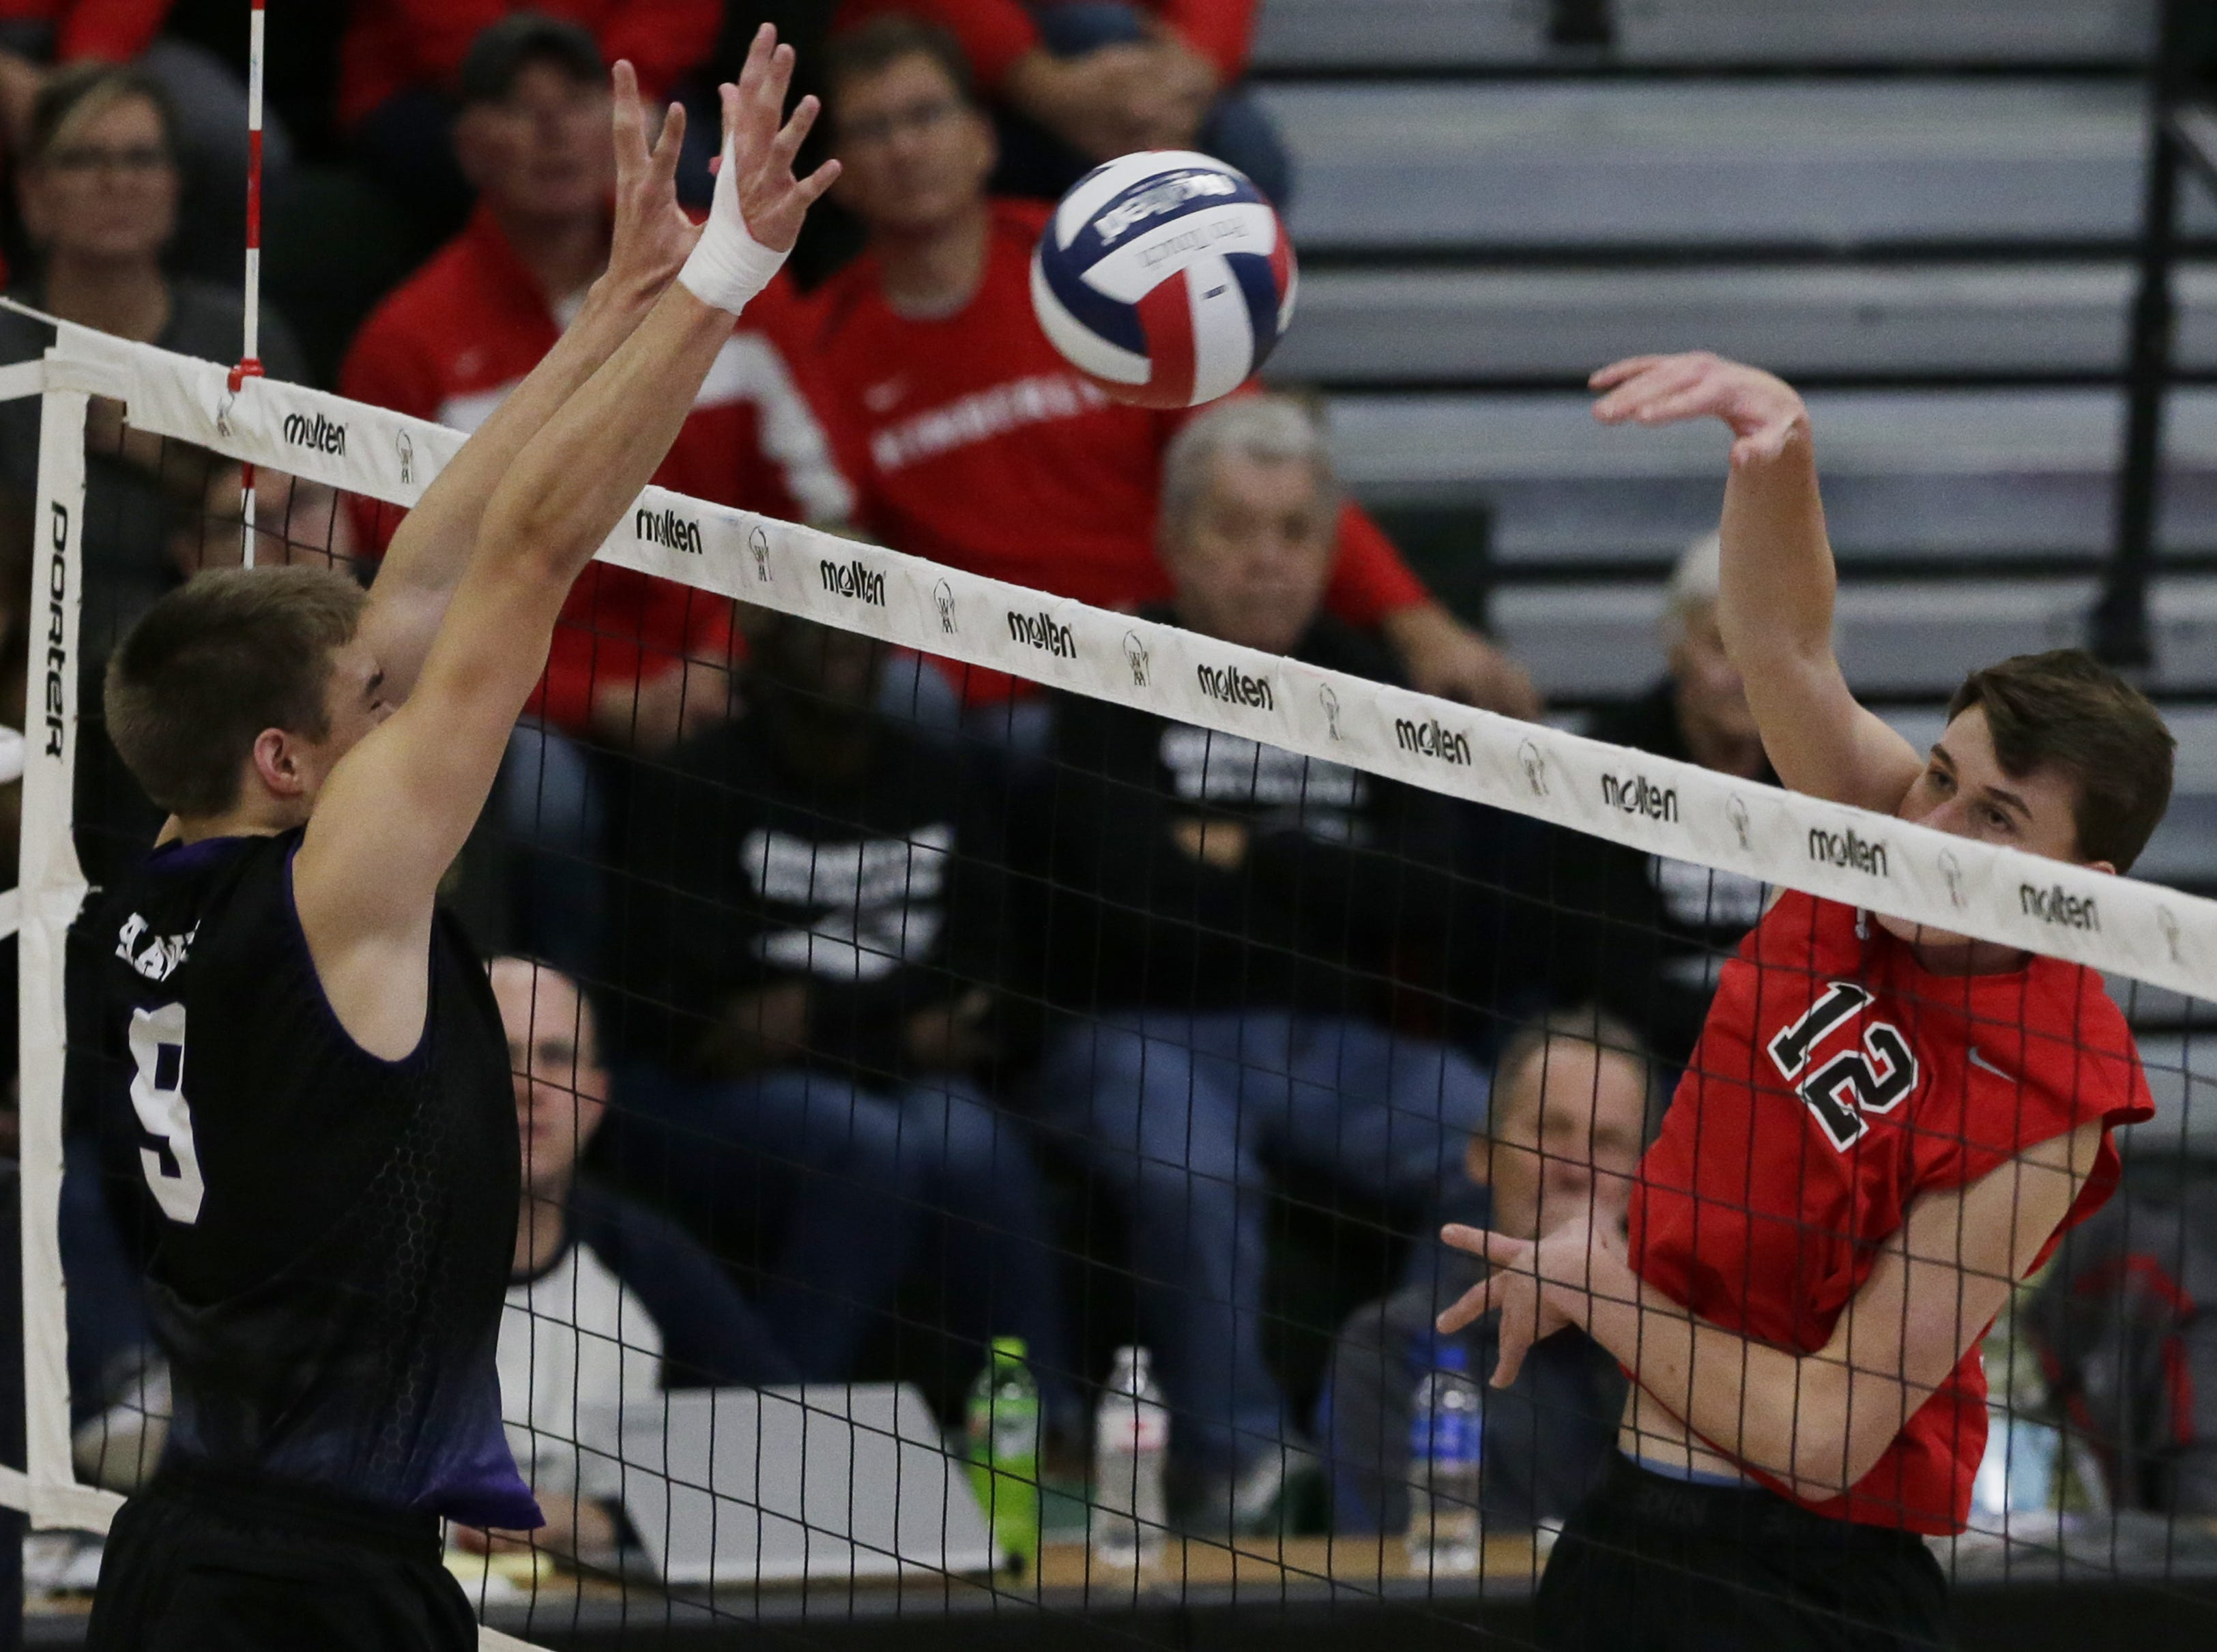 Kimberly's Parker Hietpas hits the ball while Kenosha Indian Trail's Jackson Antos tries to block.  Kimberly Papermakers played Kenosha Indian Trail Hawks in Division 1 WIAA boys volleyball playoff semi-final, Saturday, November 10, 2018 at Wisconsin Lutheran College in Milwaukee, Wis. Joe Sienkiewicz/USA Today NETWORK-Wisconsin